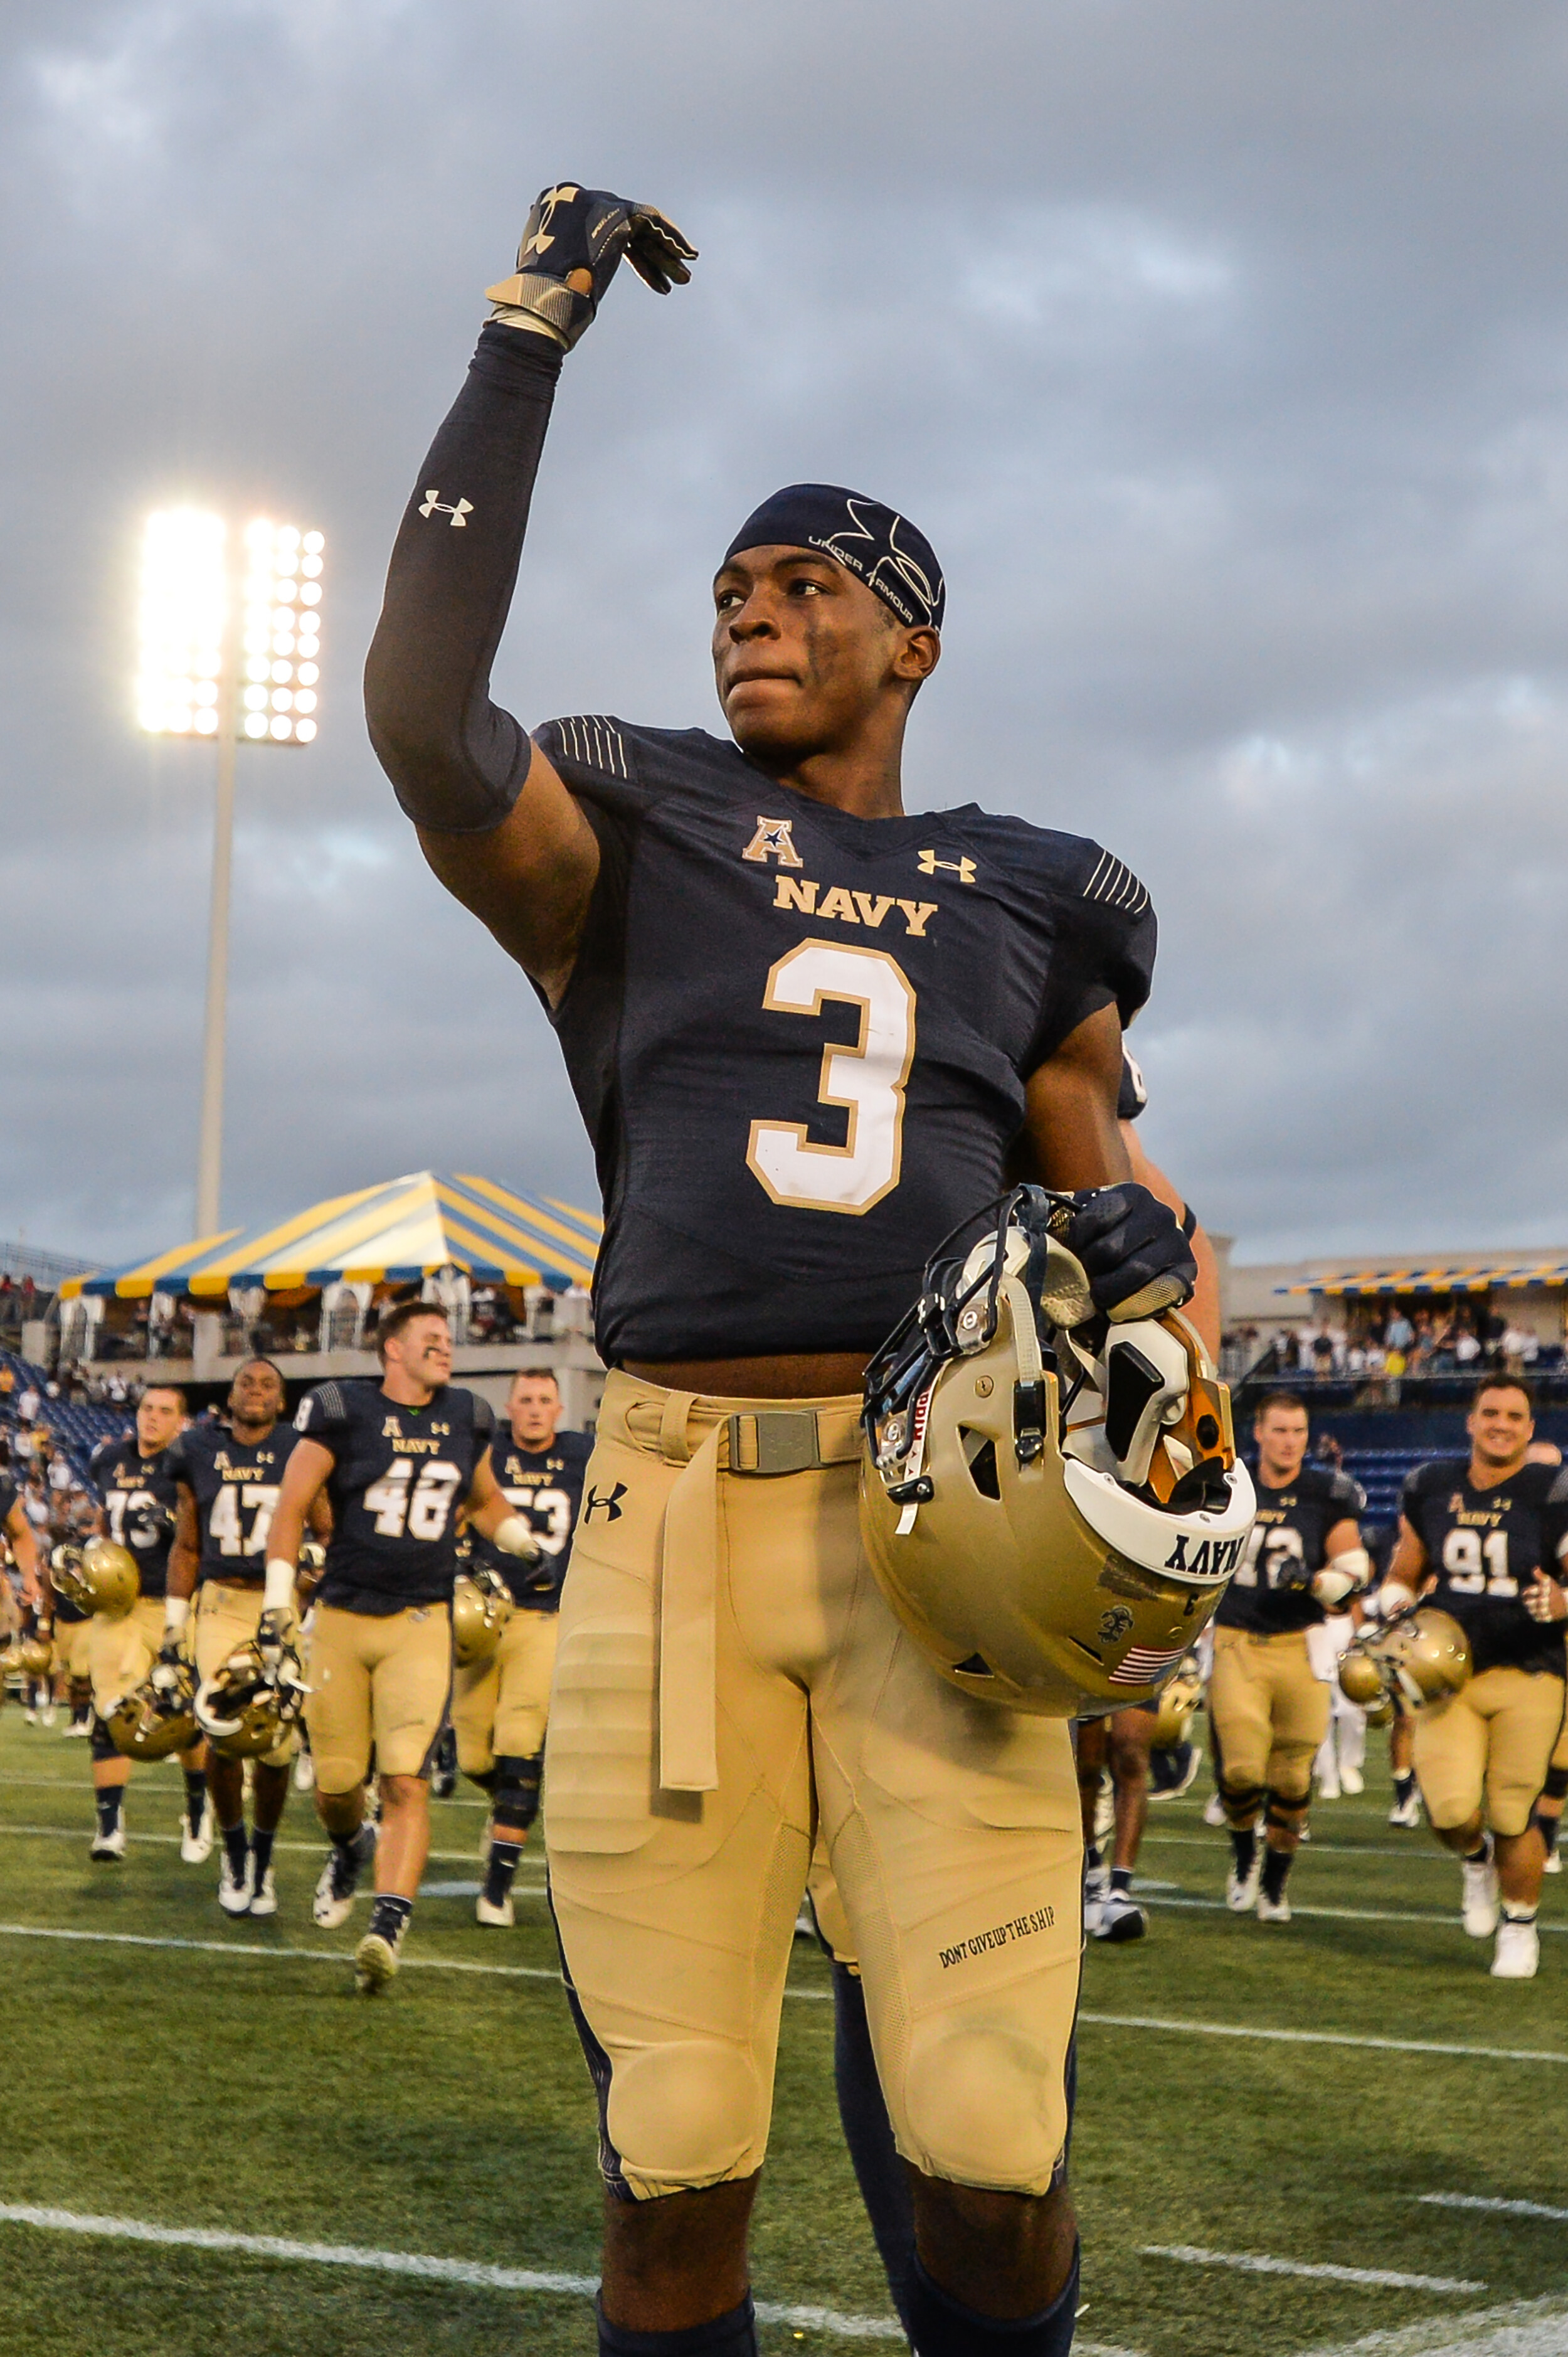 In reversal, US military allows Navy football captain to delay service to try to play in NFL